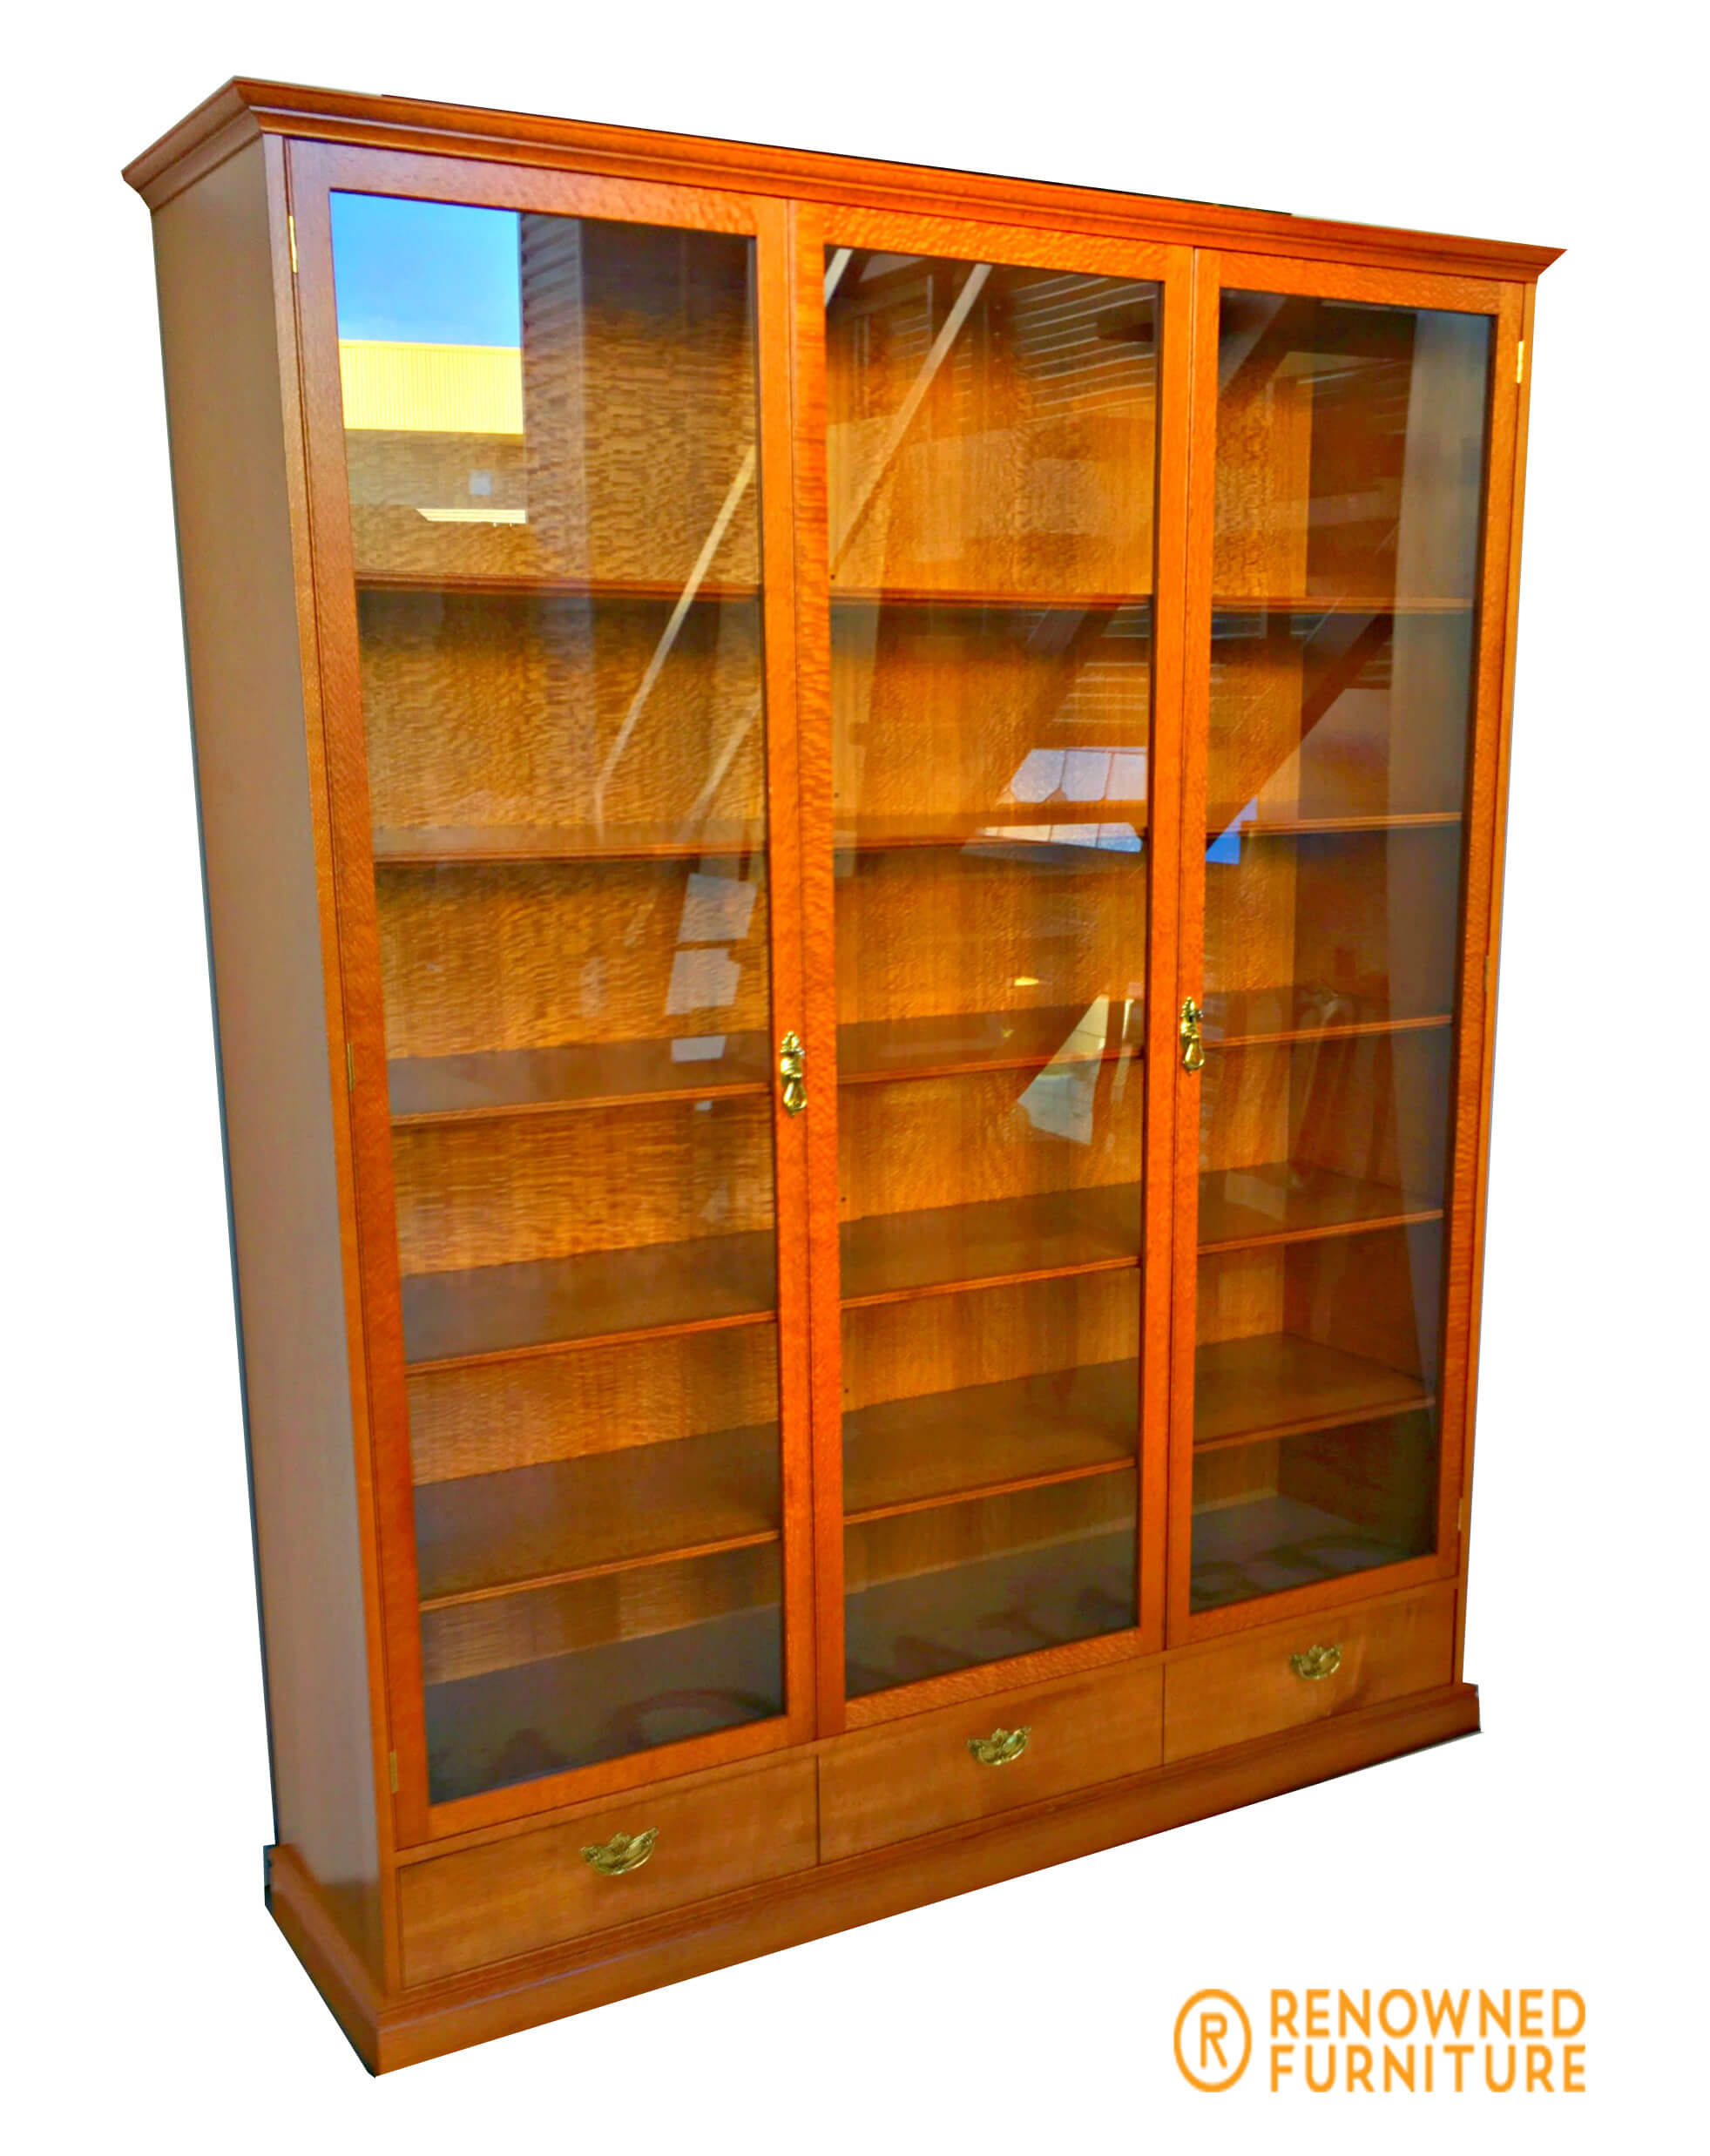 Custom-made display cabinet